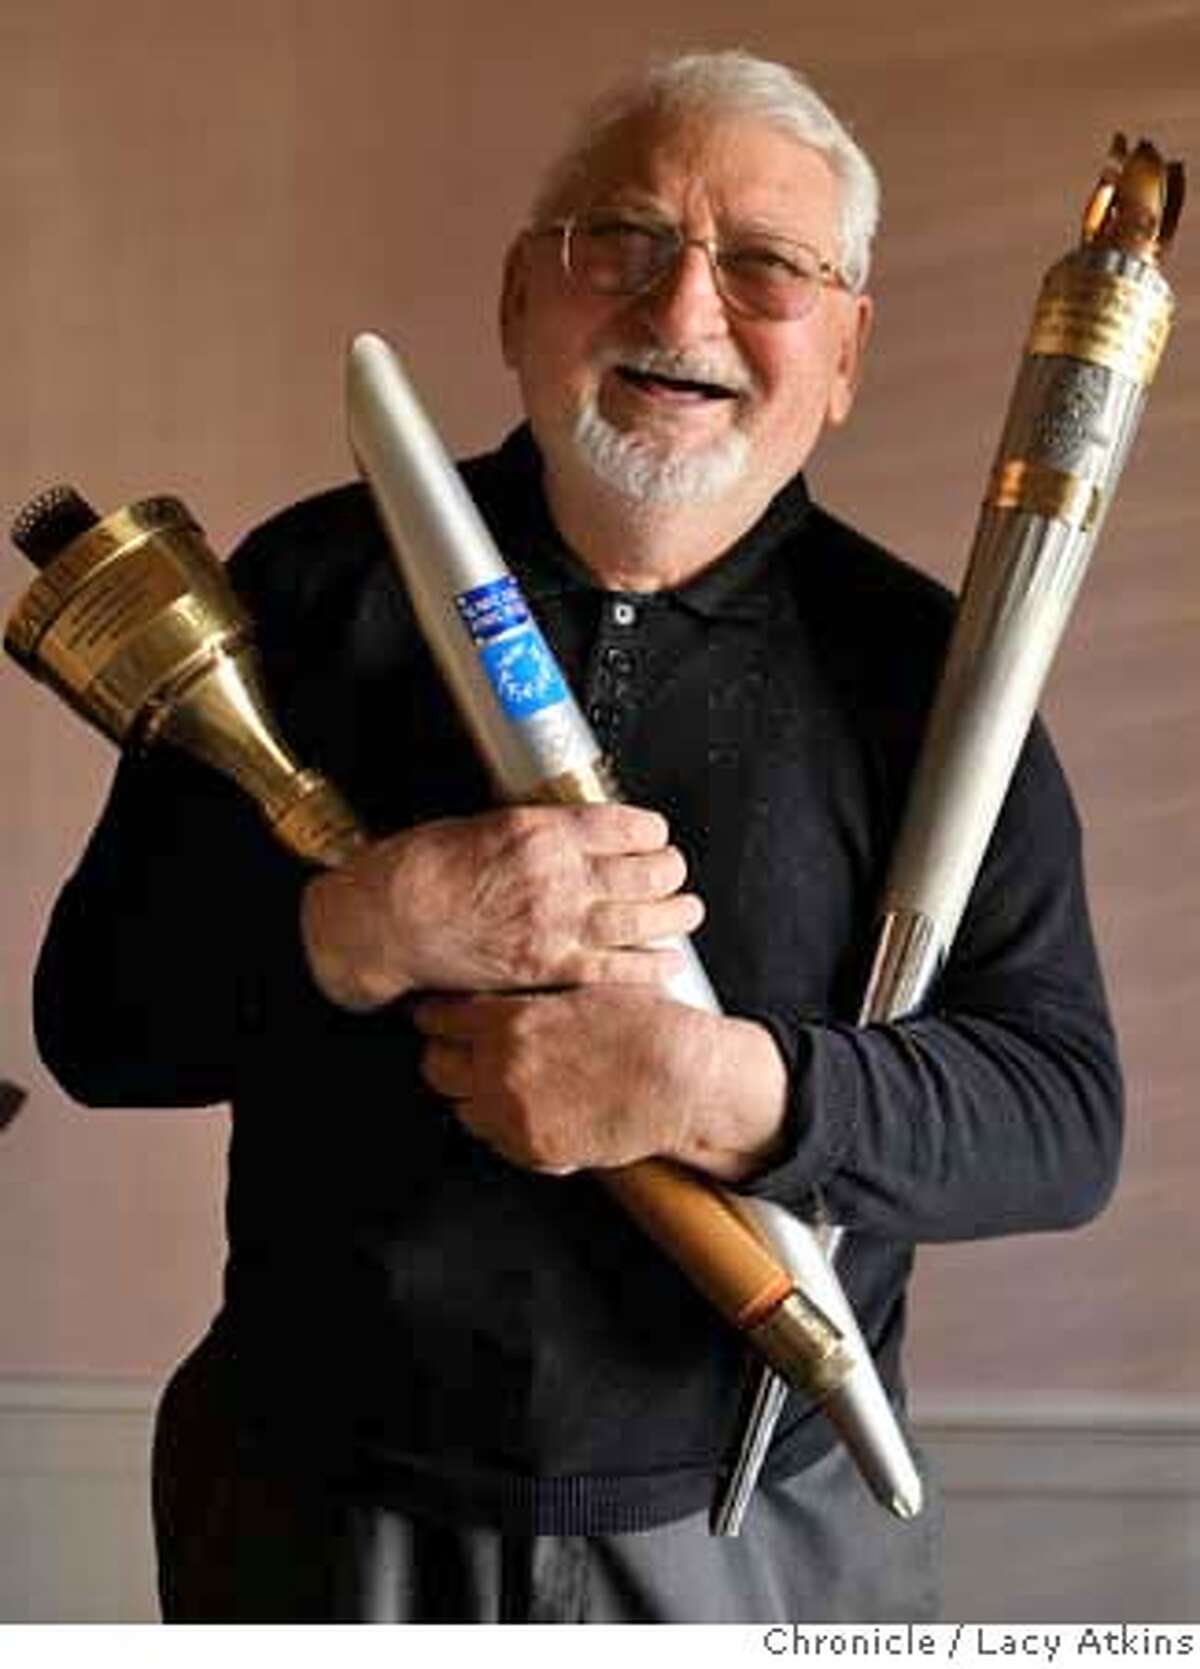 ###Live Caption:Vladimir Prikupets, 75-year-old, holds Olympic torches from Los Angeles, left, Athens and Salt Lake City, at his home, Monday, March 17, 2008, in San Francisco, Calif. Prikupets, has been to 10 Olympic games and has participated in three previous Olympic torch relays. Photo by Lacy Atkins / San Francisco Chronicle###Caption History:Vladimir Prikupets, 75-year-old, holds olympic torches from Los Angeles, left, Athens and Salt Lake City, at his home, Monday March 17, 2008, in San Francisco, Calif. Prikupets, has been to 10 olympics and has participated in 3 previous olympic torch relays. Photo by Lacy Atkins / San Francisco Chronicle###Notes:Vladimir Prikupets###Special Instructions:MANDATORY CREDIT FOR PHOTOG AND SAN FRANCISCO CHRONICLE/NO SALES MAGS OUT